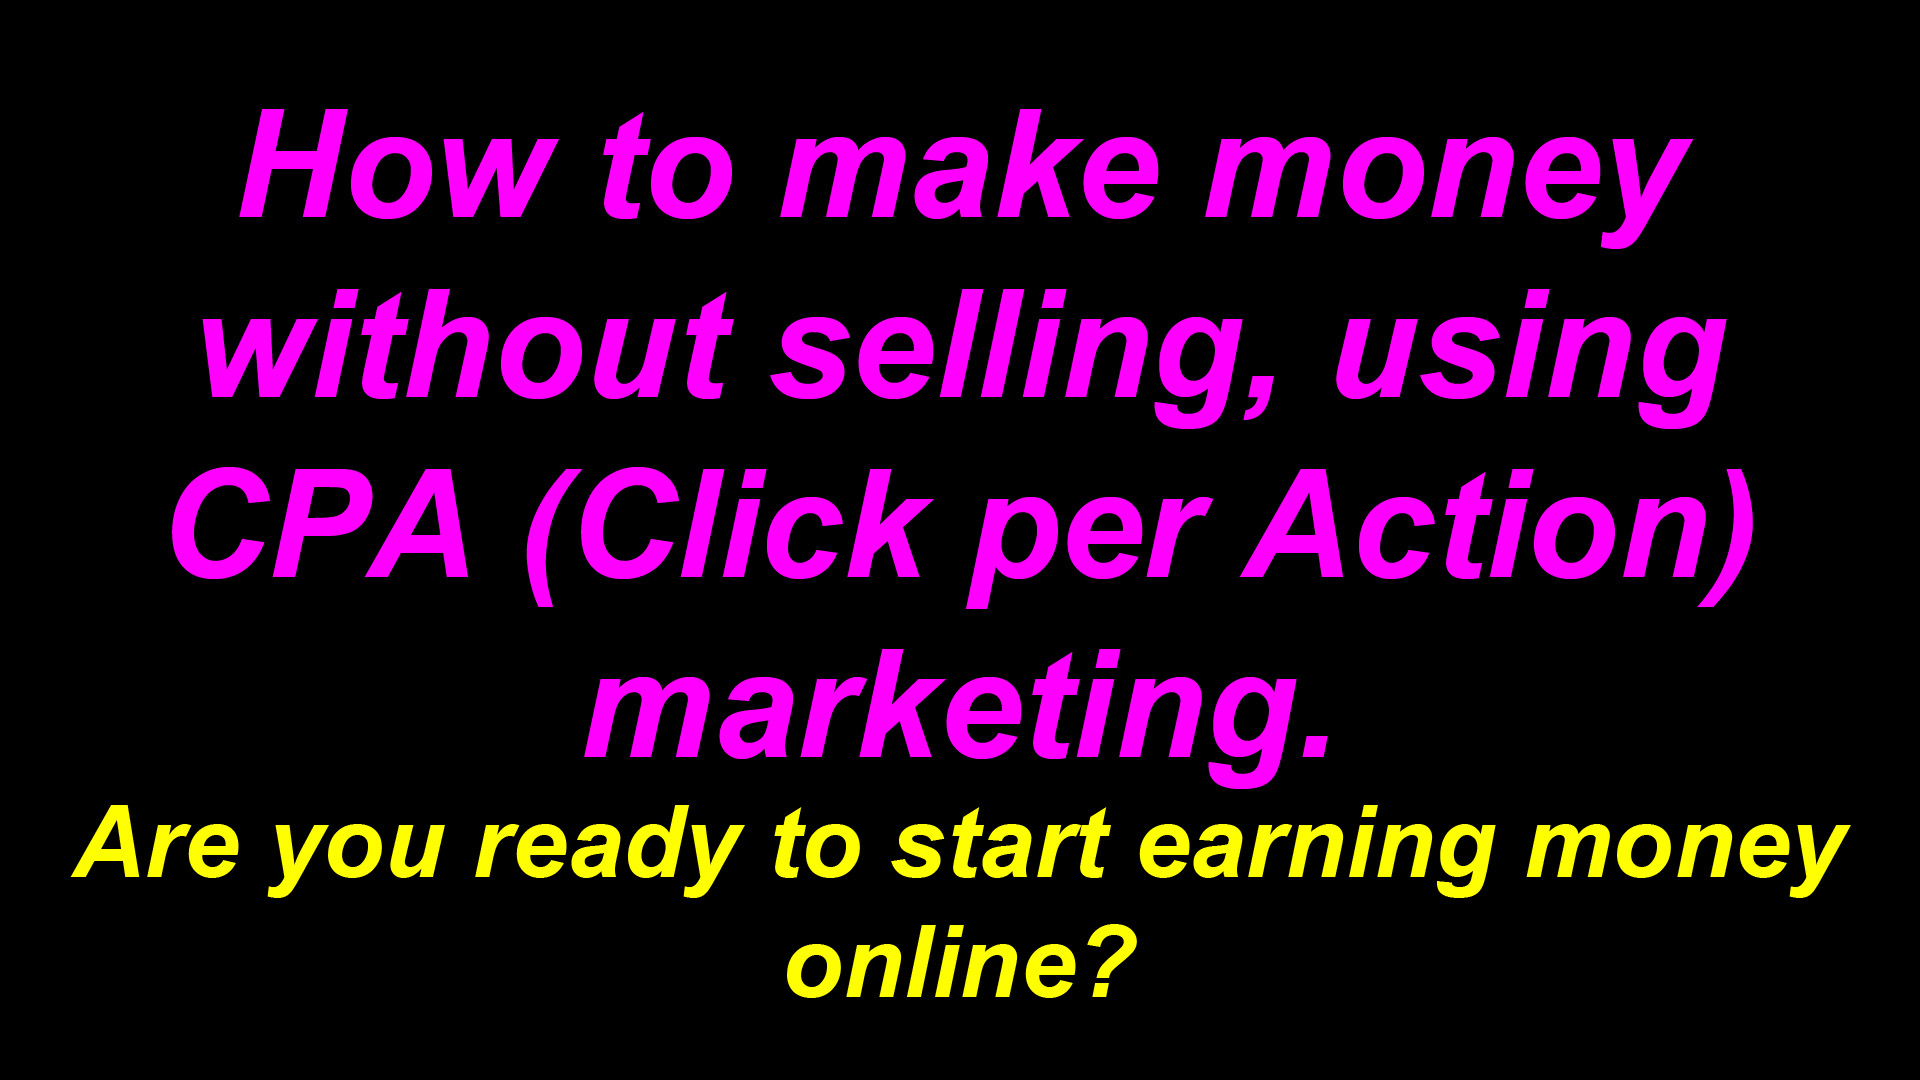 Click here for more details on, How to make money without selling using CPA